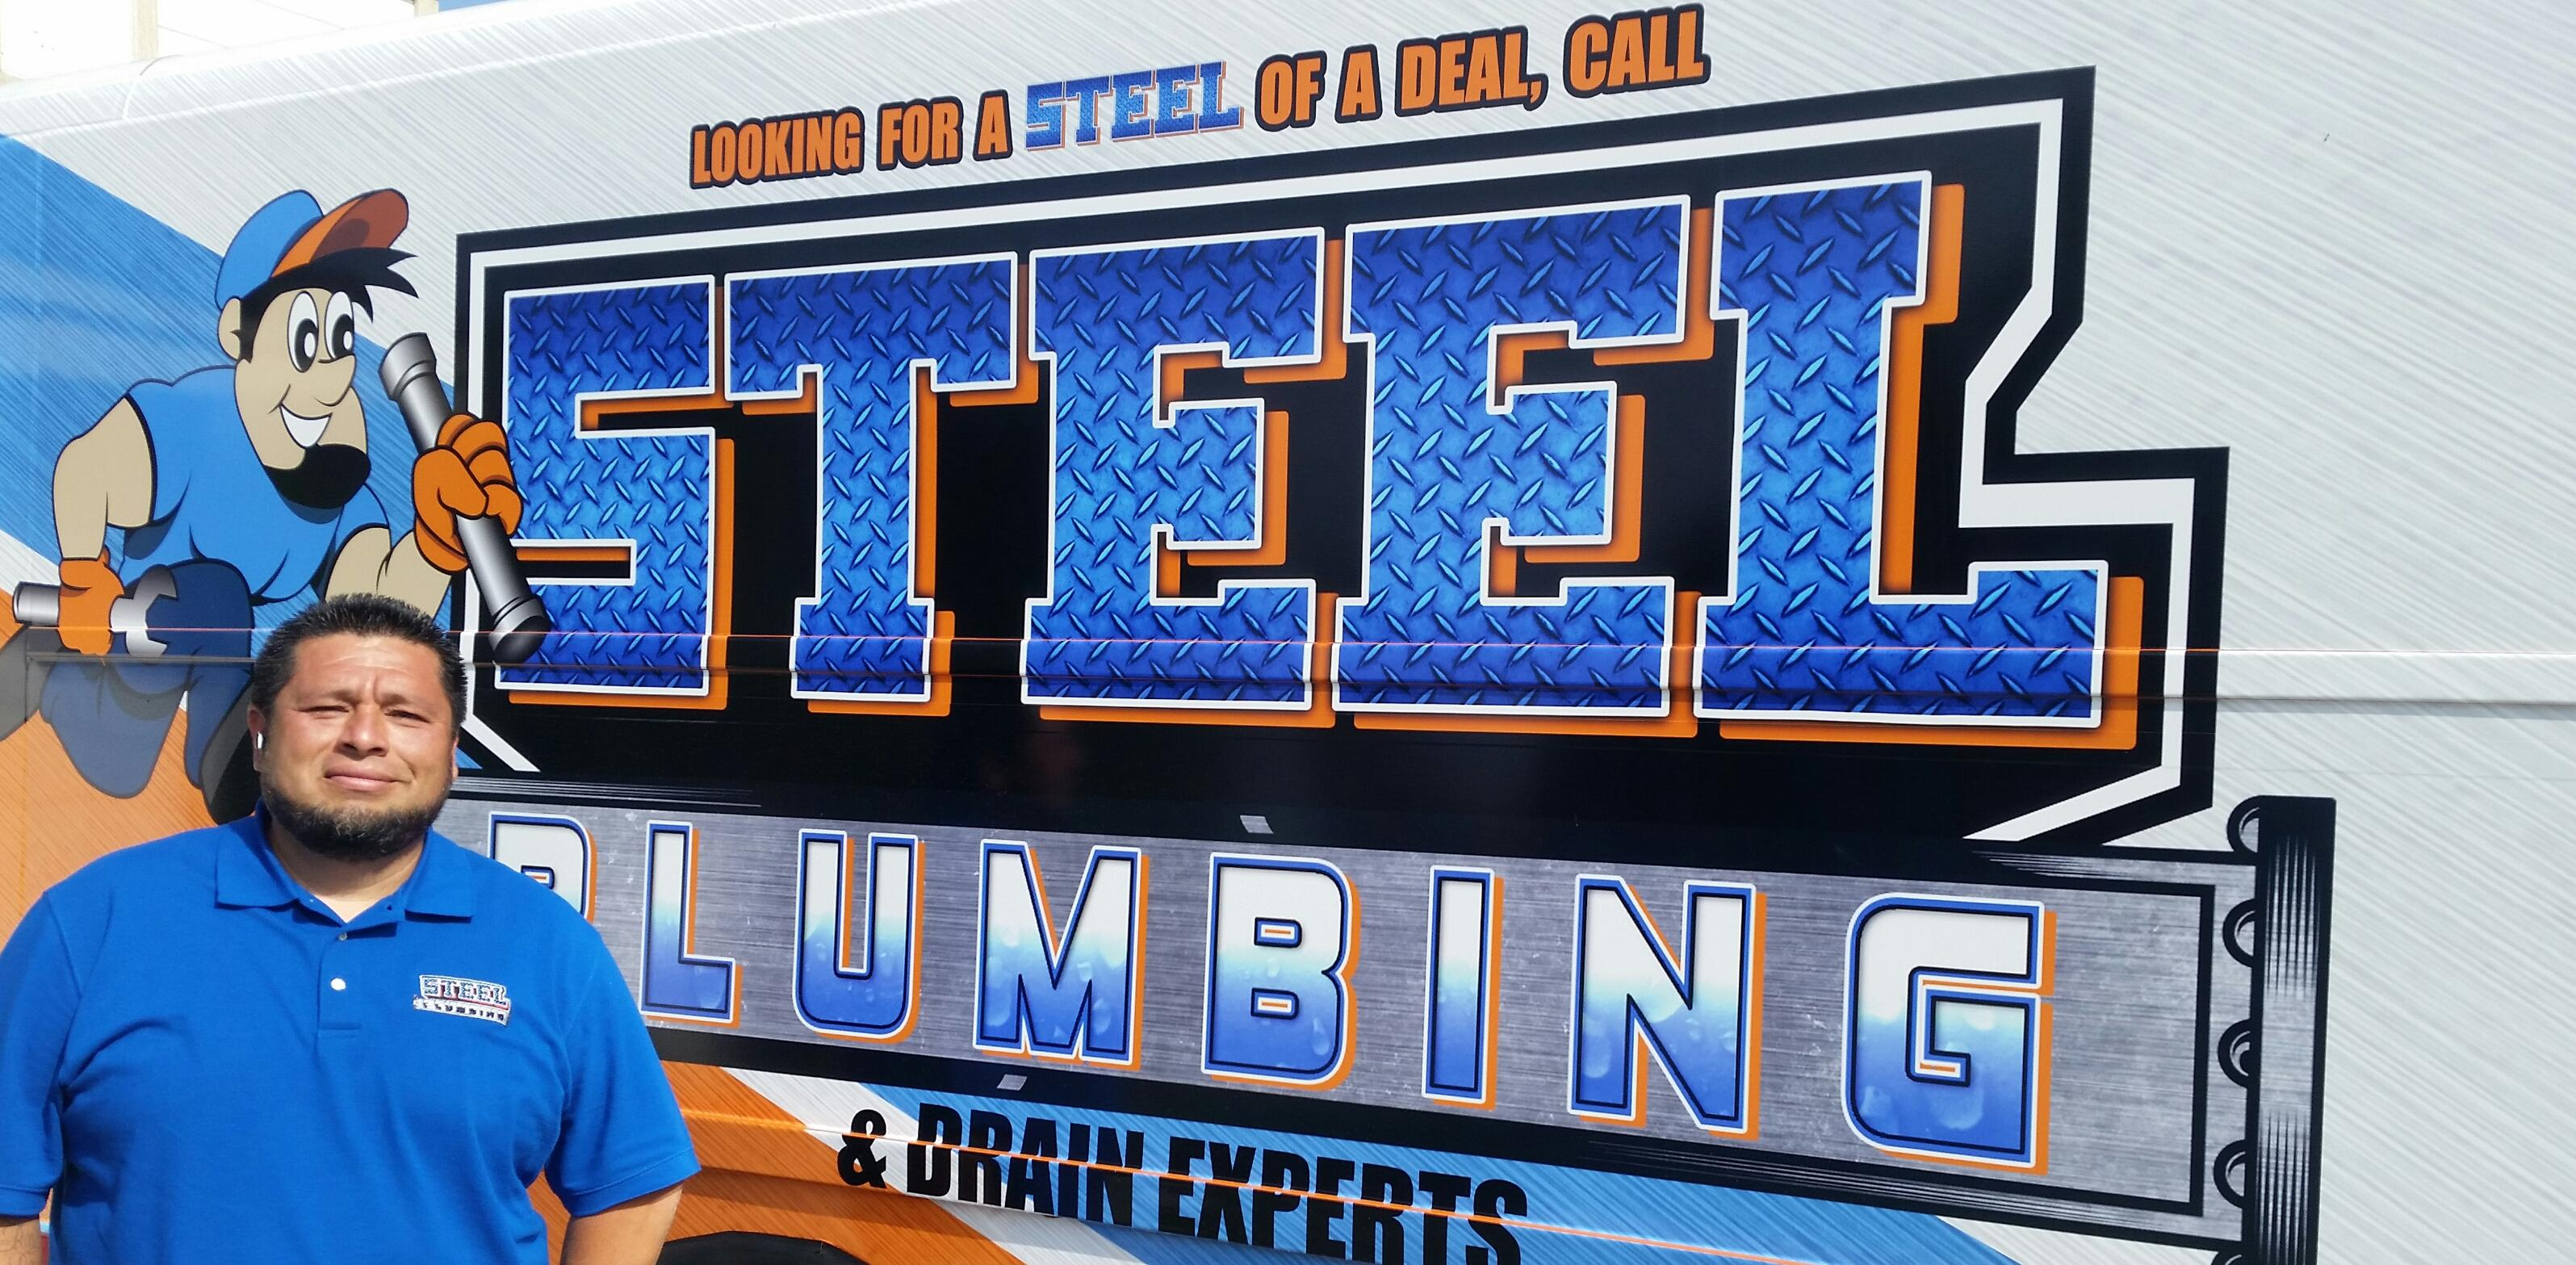 Steel Plumbing and Drain Experts